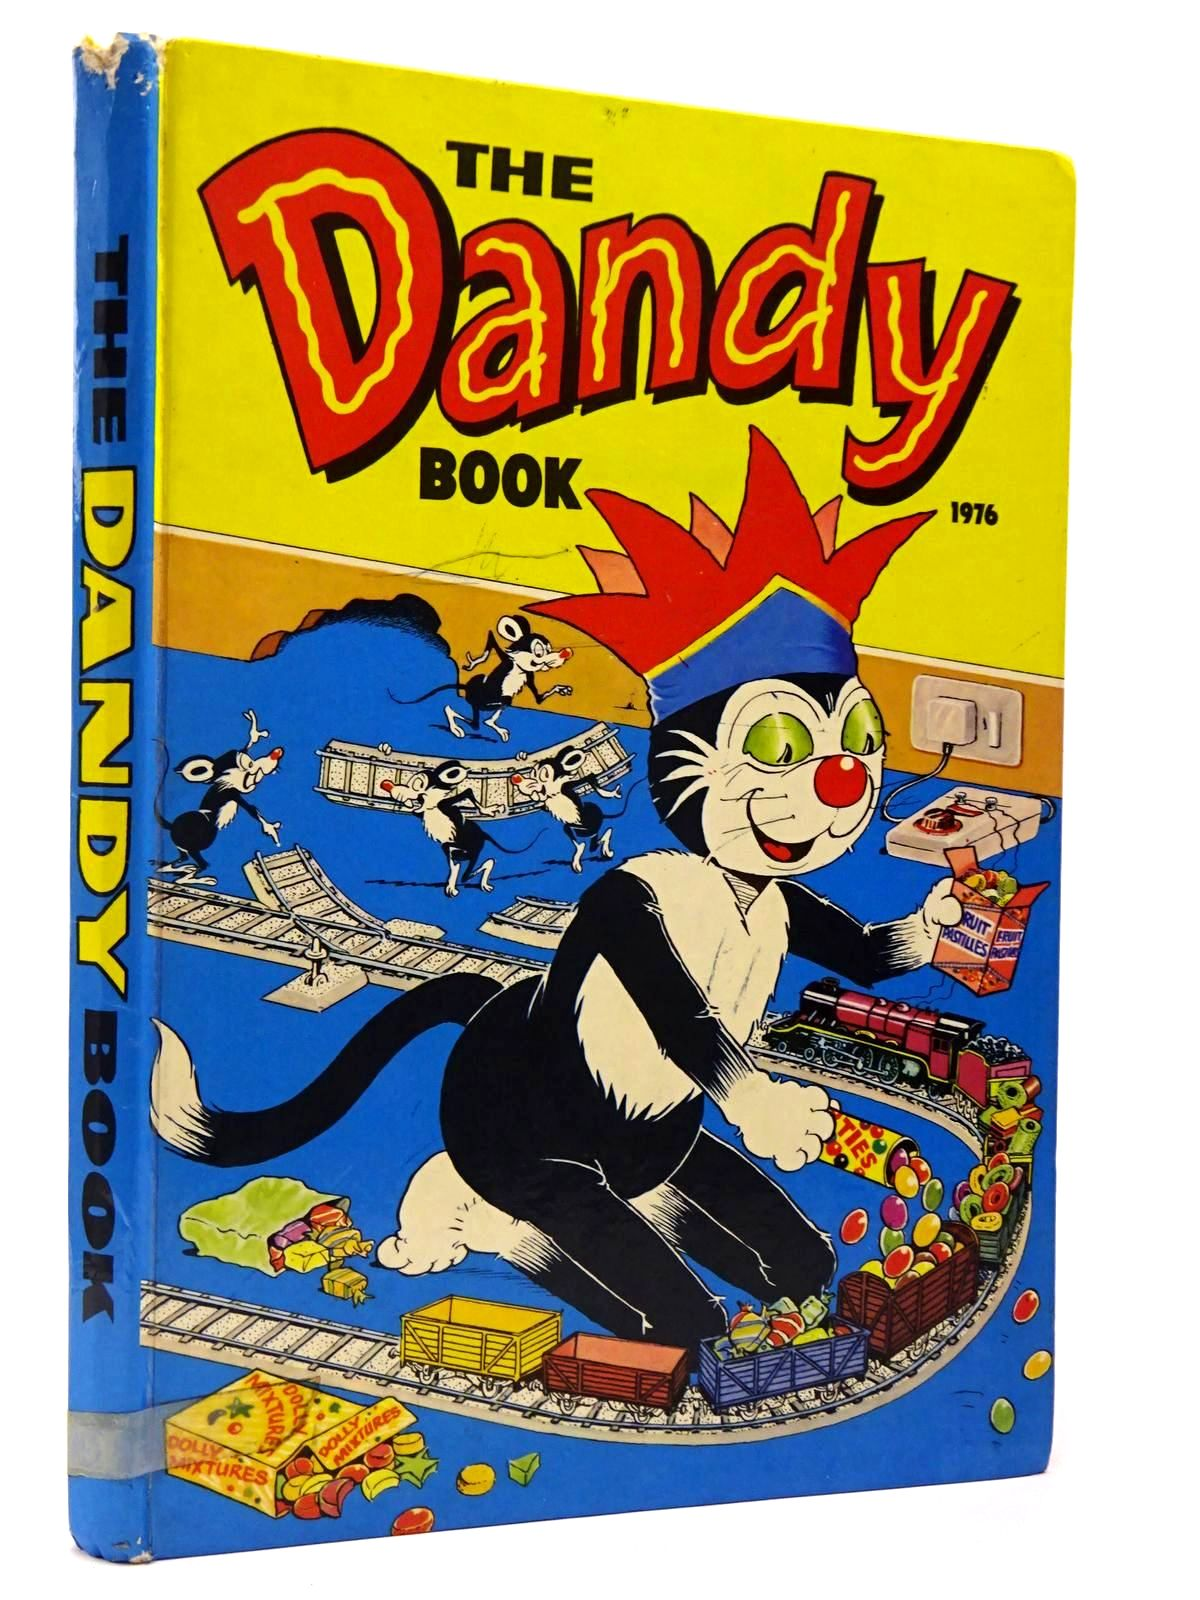 Photo of THE DANDY BOOK 1976 published by D.C. Thomson & Co Ltd. (STOCK CODE: 2129726)  for sale by Stella & Rose's Books